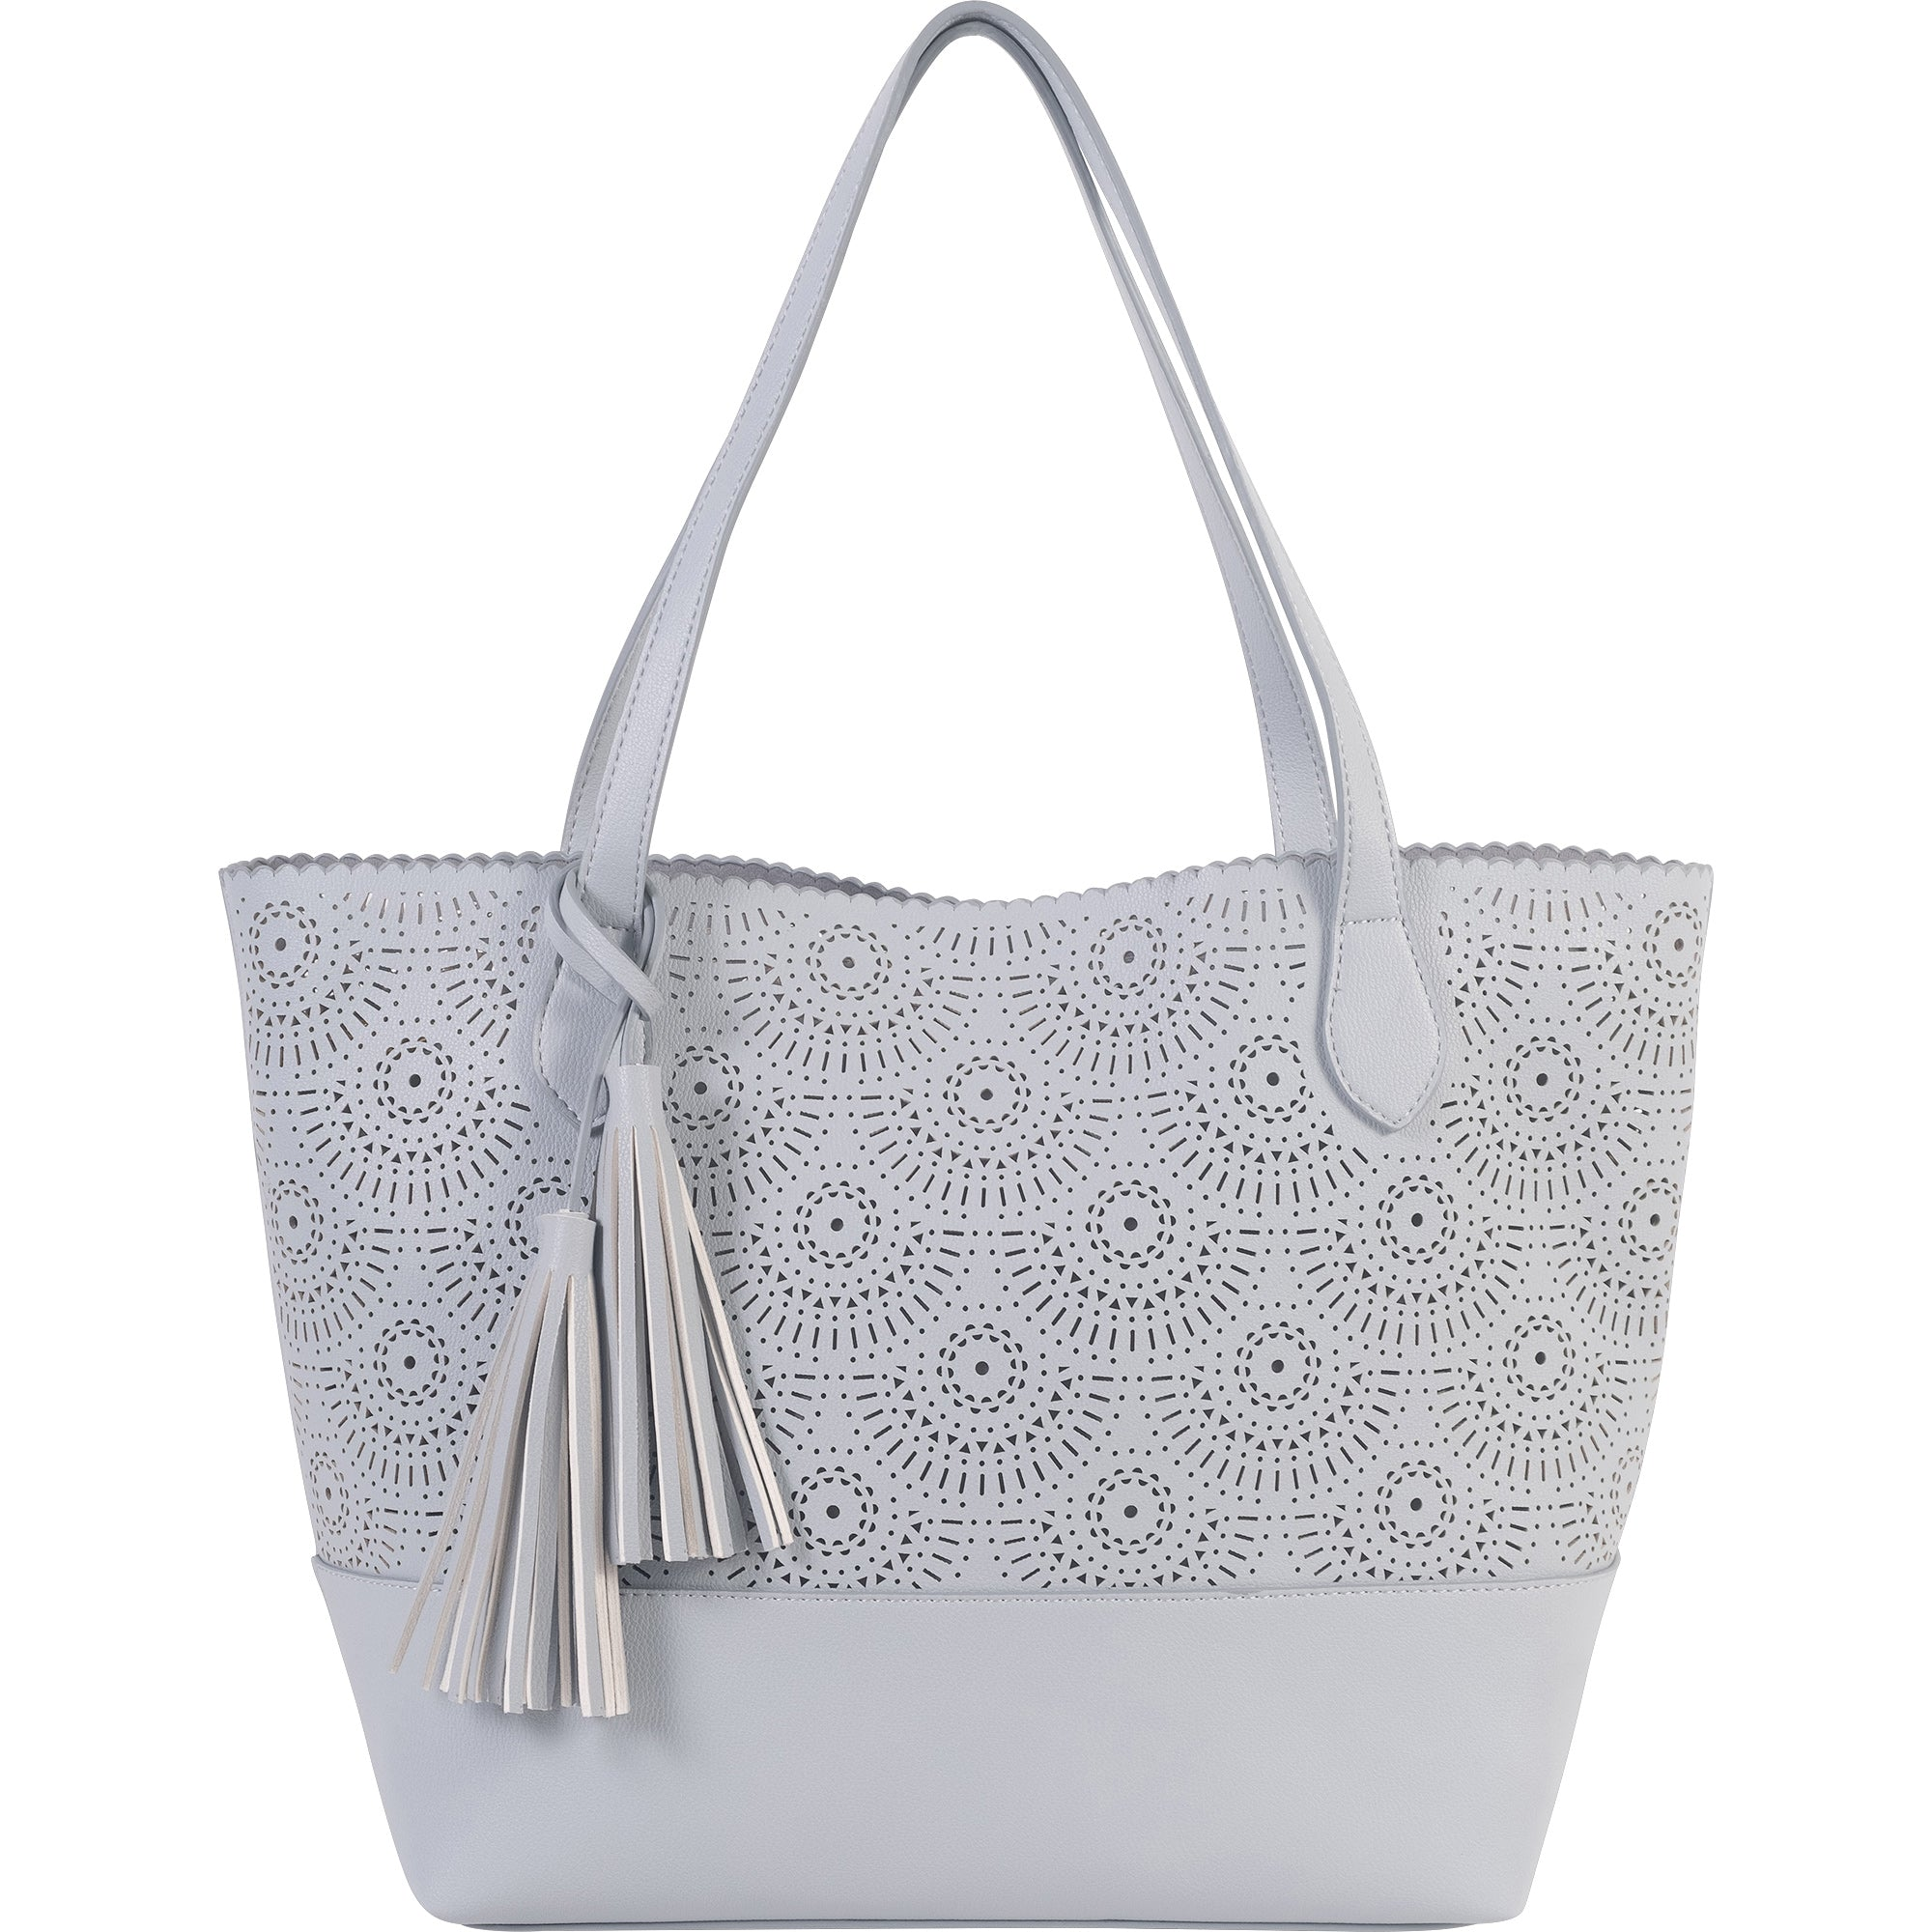 The Jess Tote